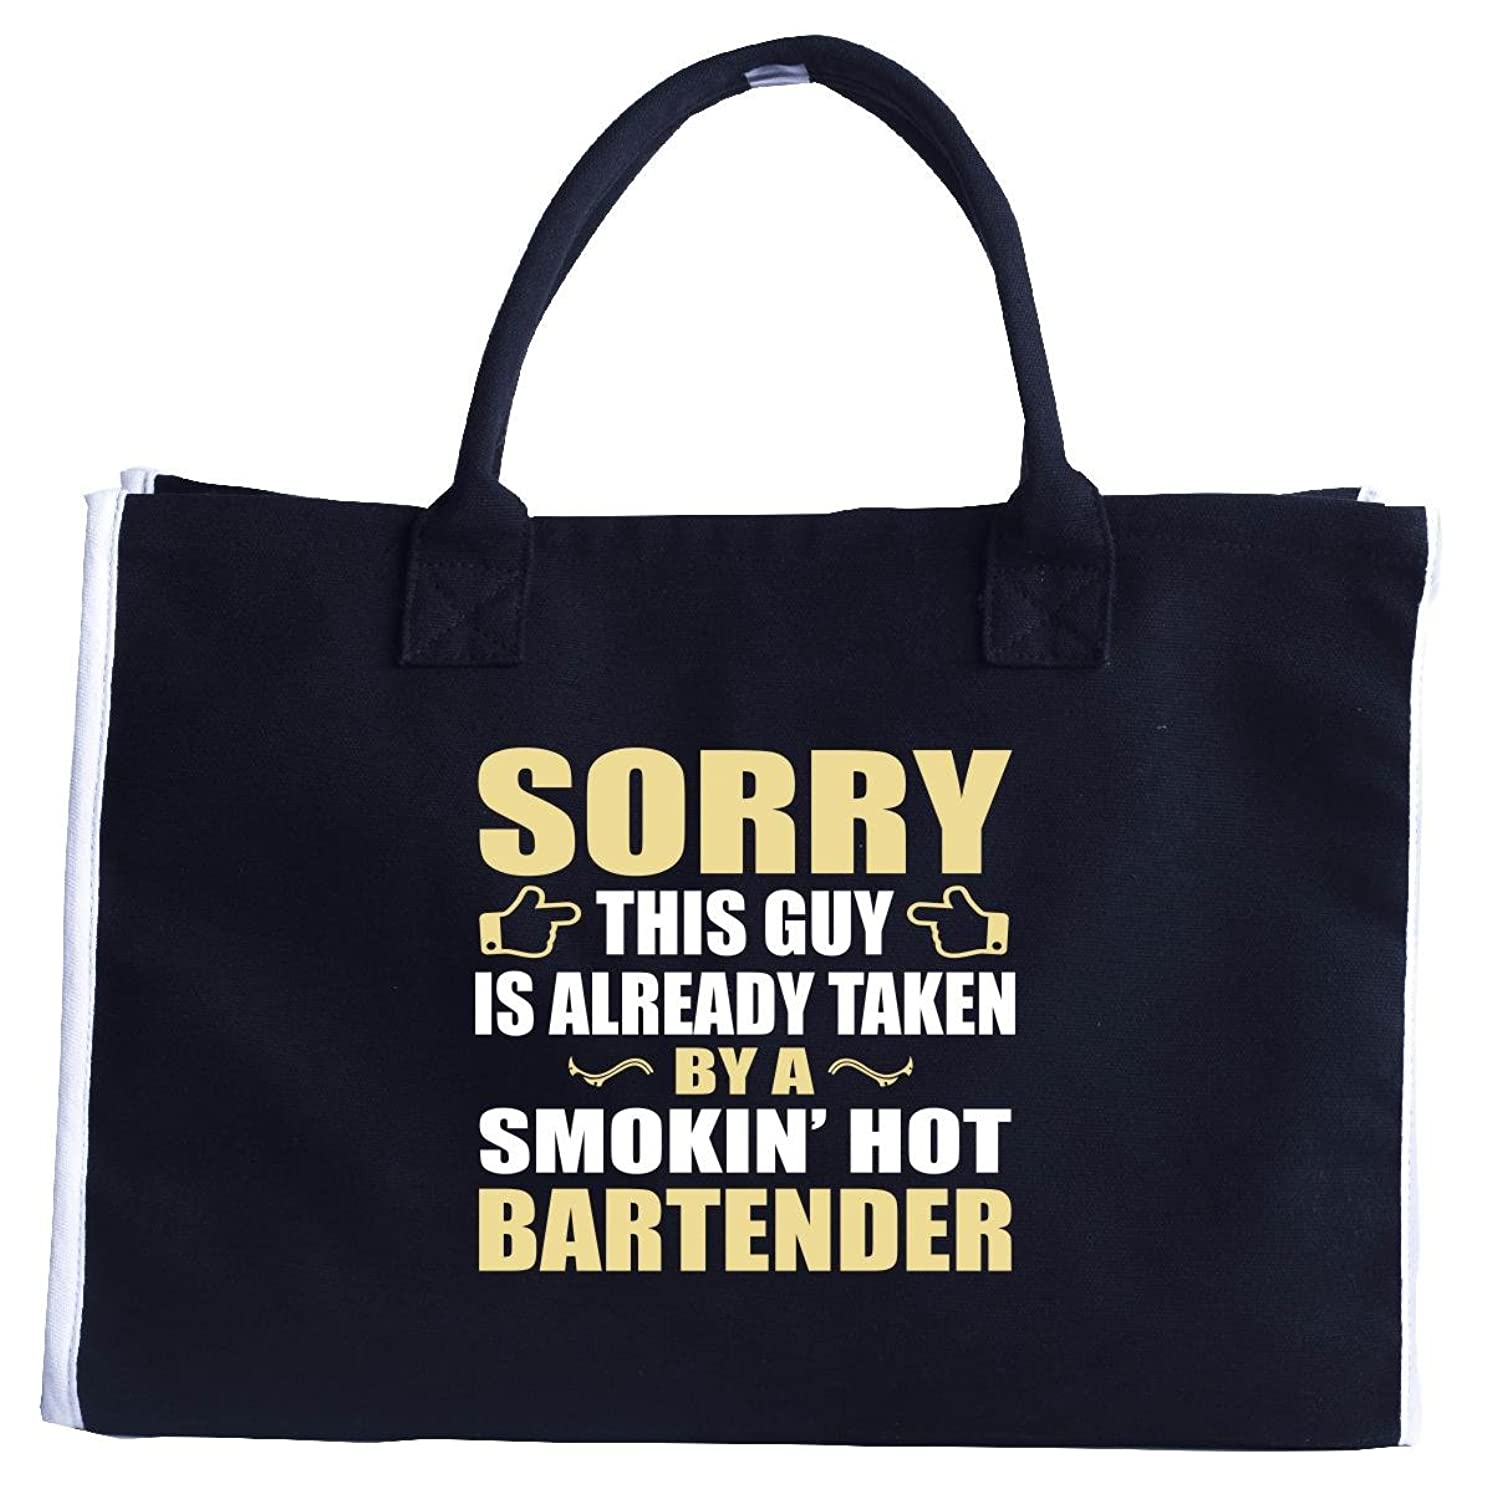 This Guy Is Taken By A Smokin' Hot Bartender - Fashion Customized Tote Bag